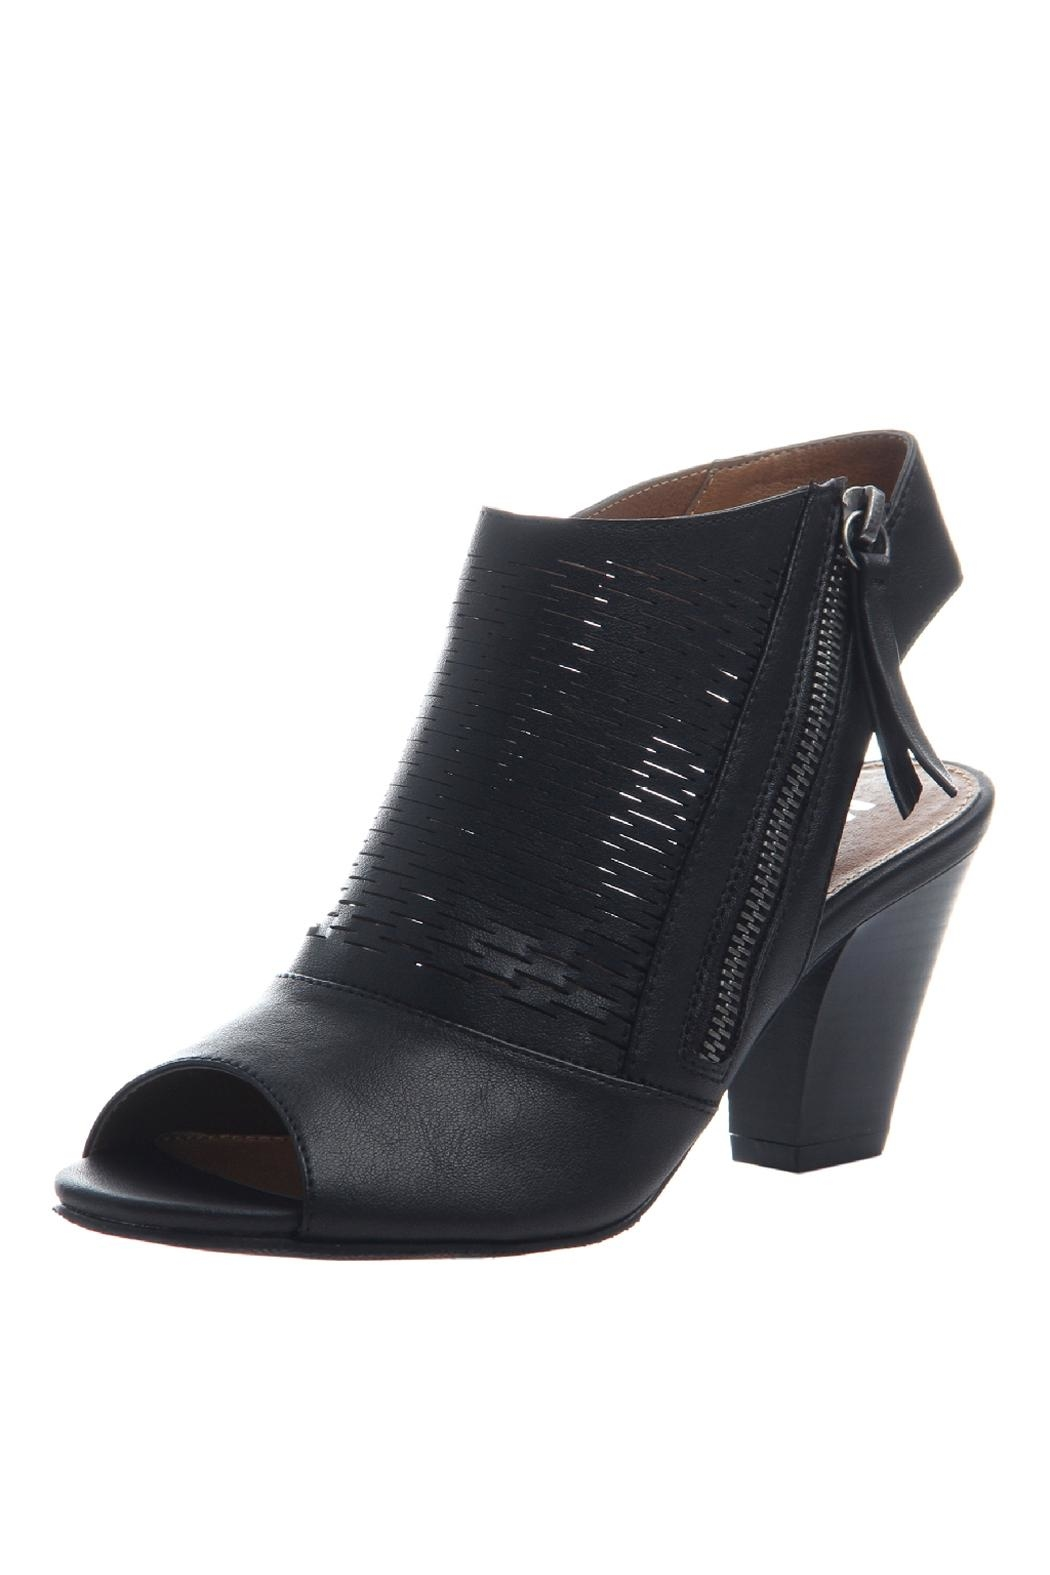 Madeline Wishes Perforated Heel - Main Image